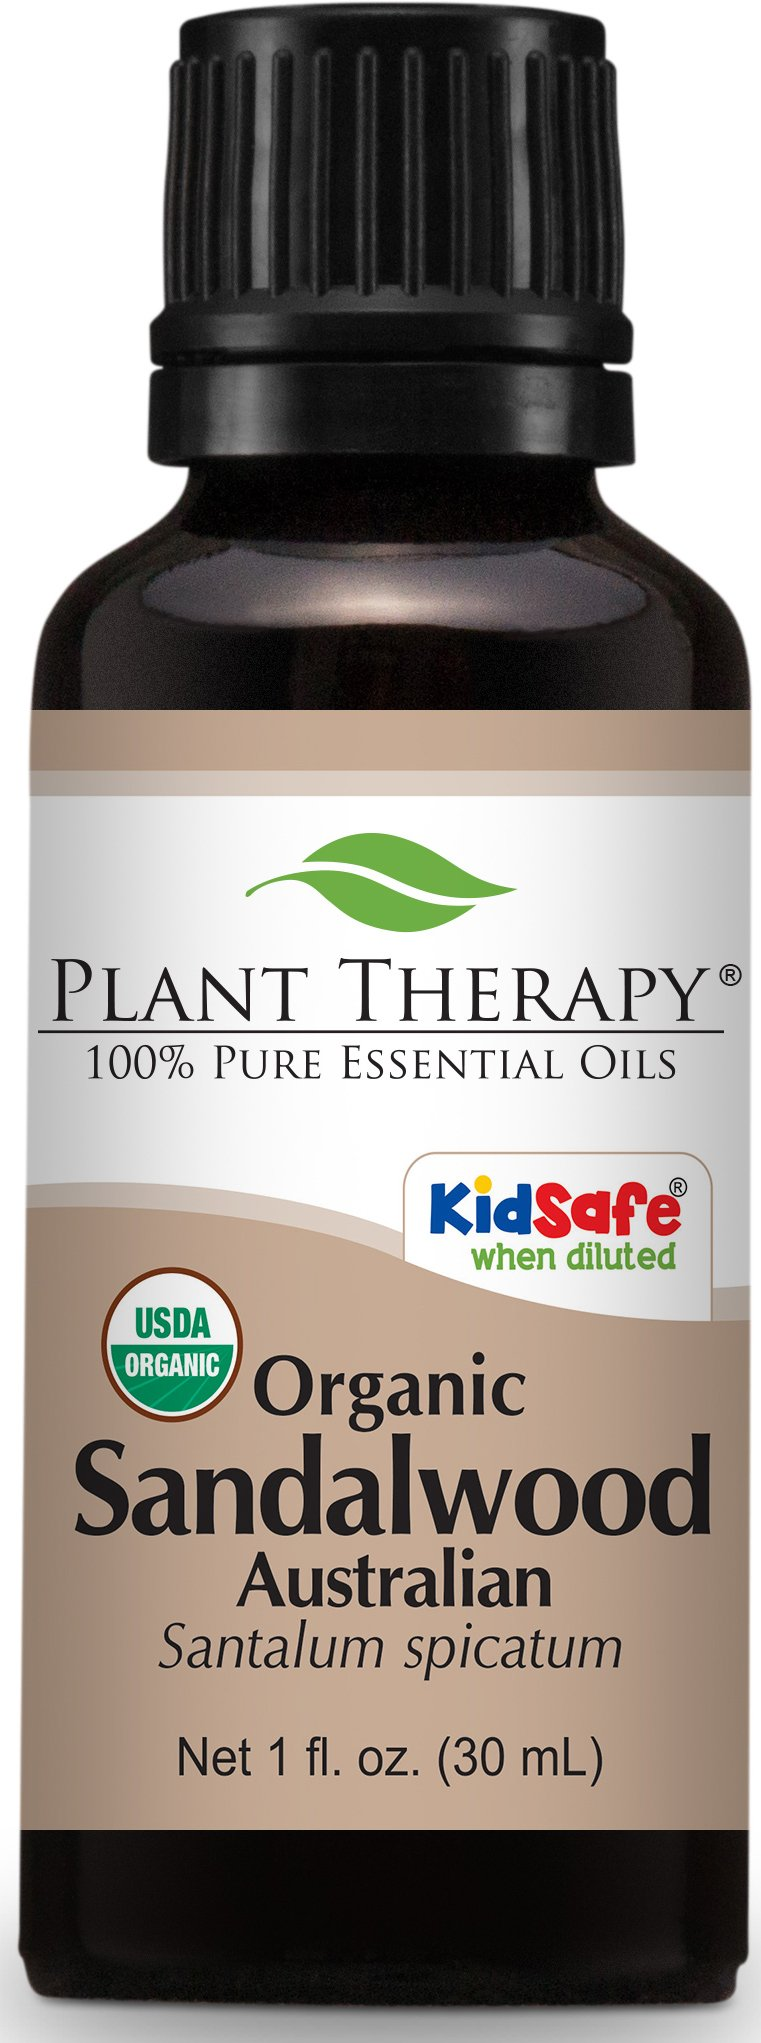 Plant Therapy USDA Certified Organic Sandalwood Essential Oil. 100% Pure, Undiluted, Therapeutic Grade. 30 ml (1 oz).